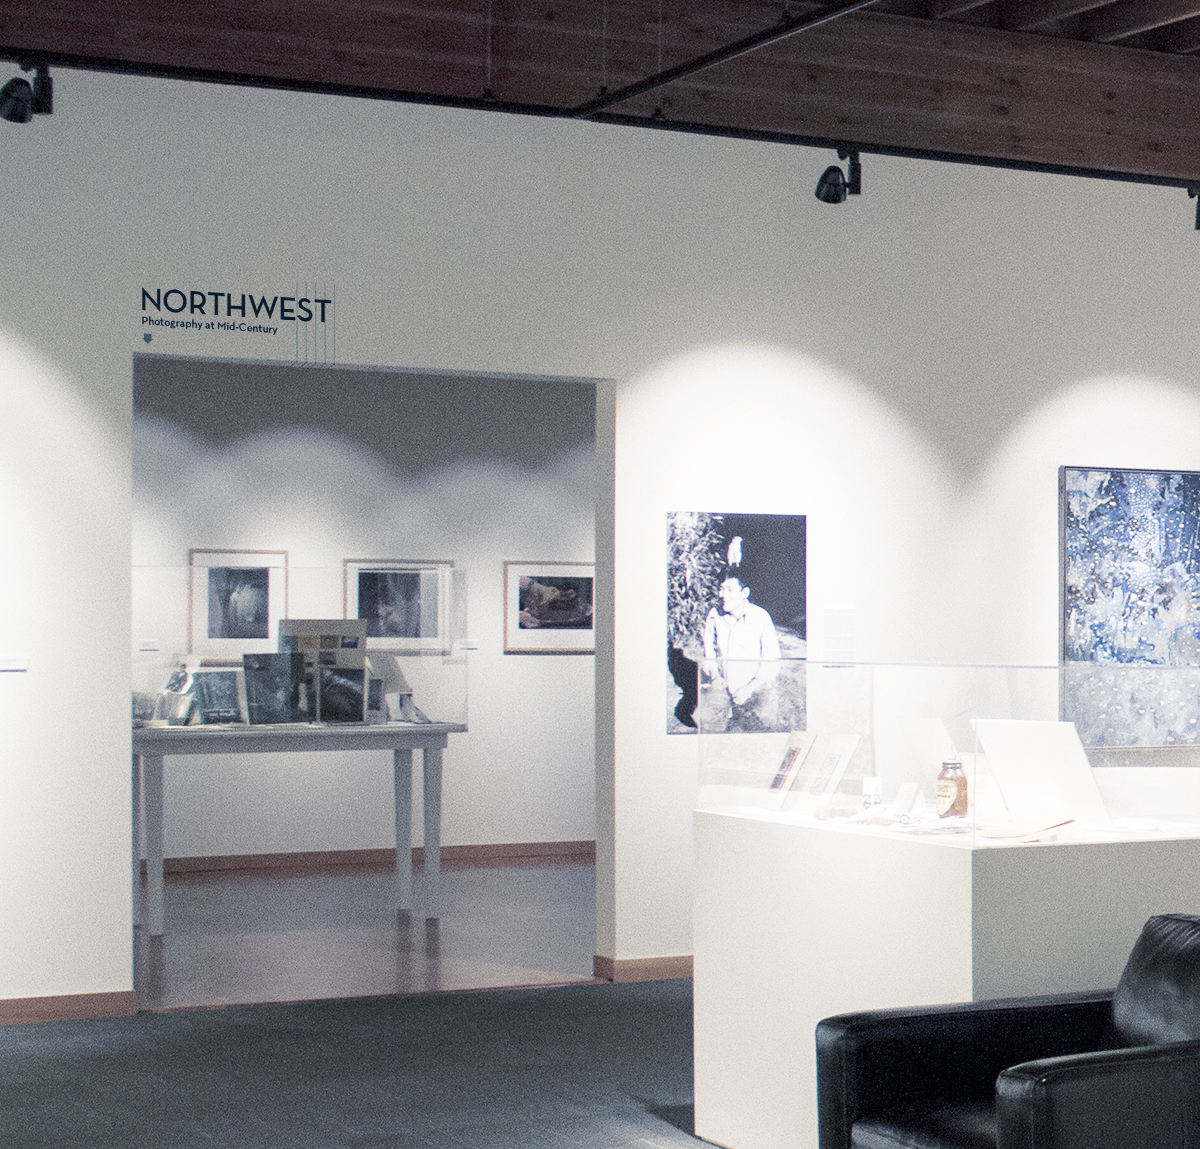 Concept exhibition titling for transition entry points between galleries